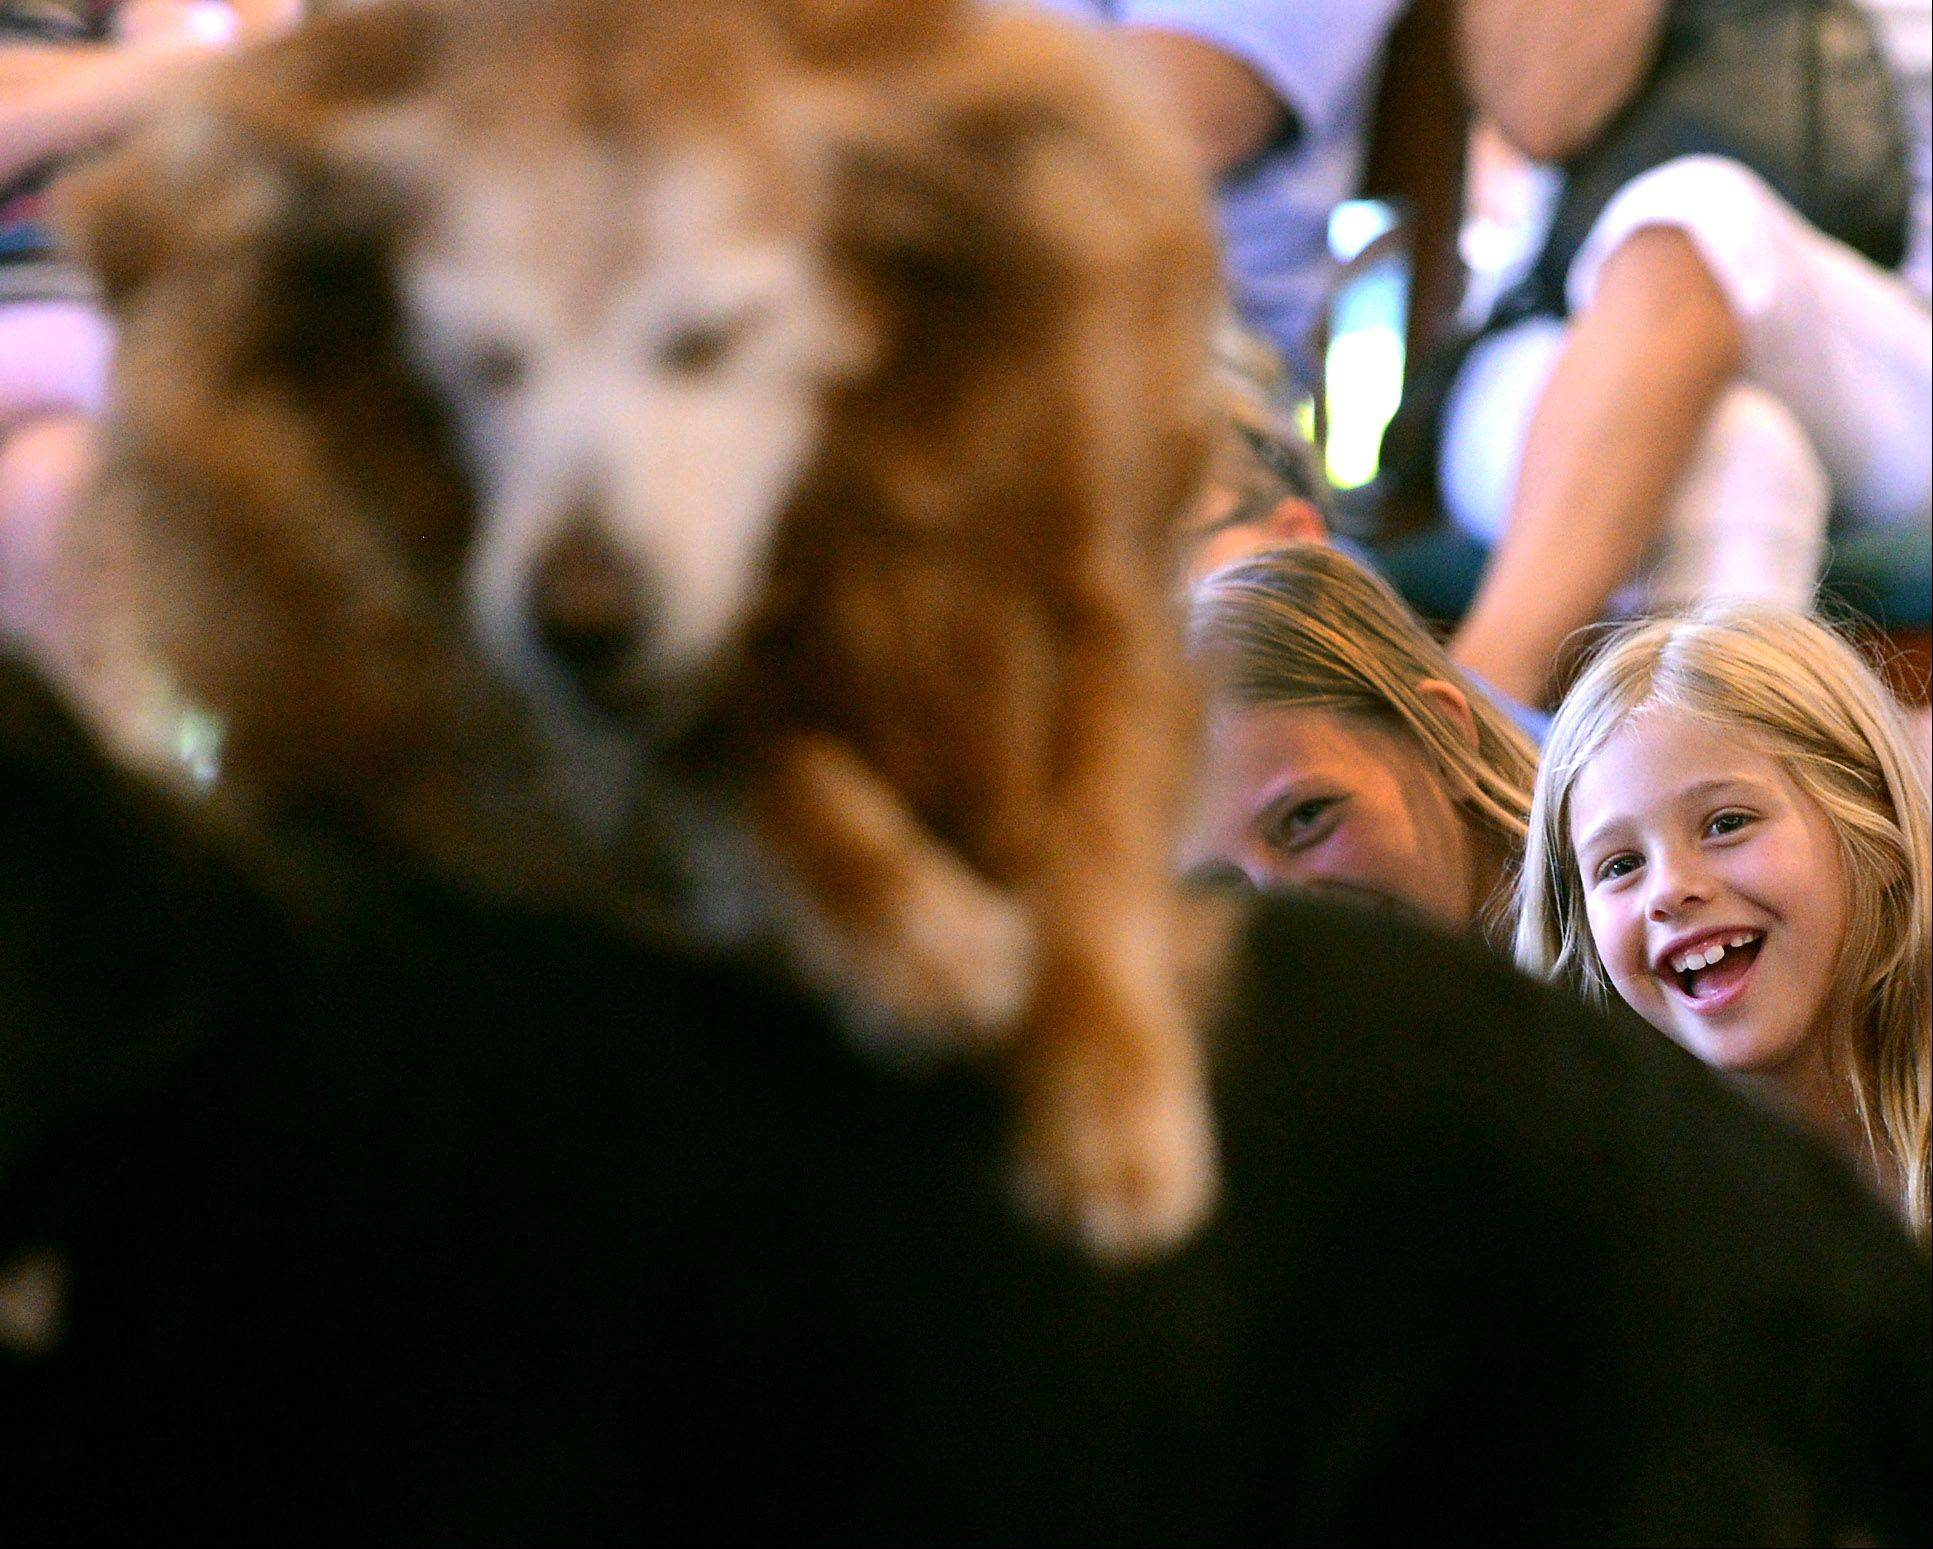 Devin Gutsmiedl, 7, of St. Charles, watches and smiles as Robin�s Dog Stars perform at the Town and Country Public Library in Elburn Thursday. Robin Bengtson's three dogs performed more than 40 tricks for a crowd of about 100.